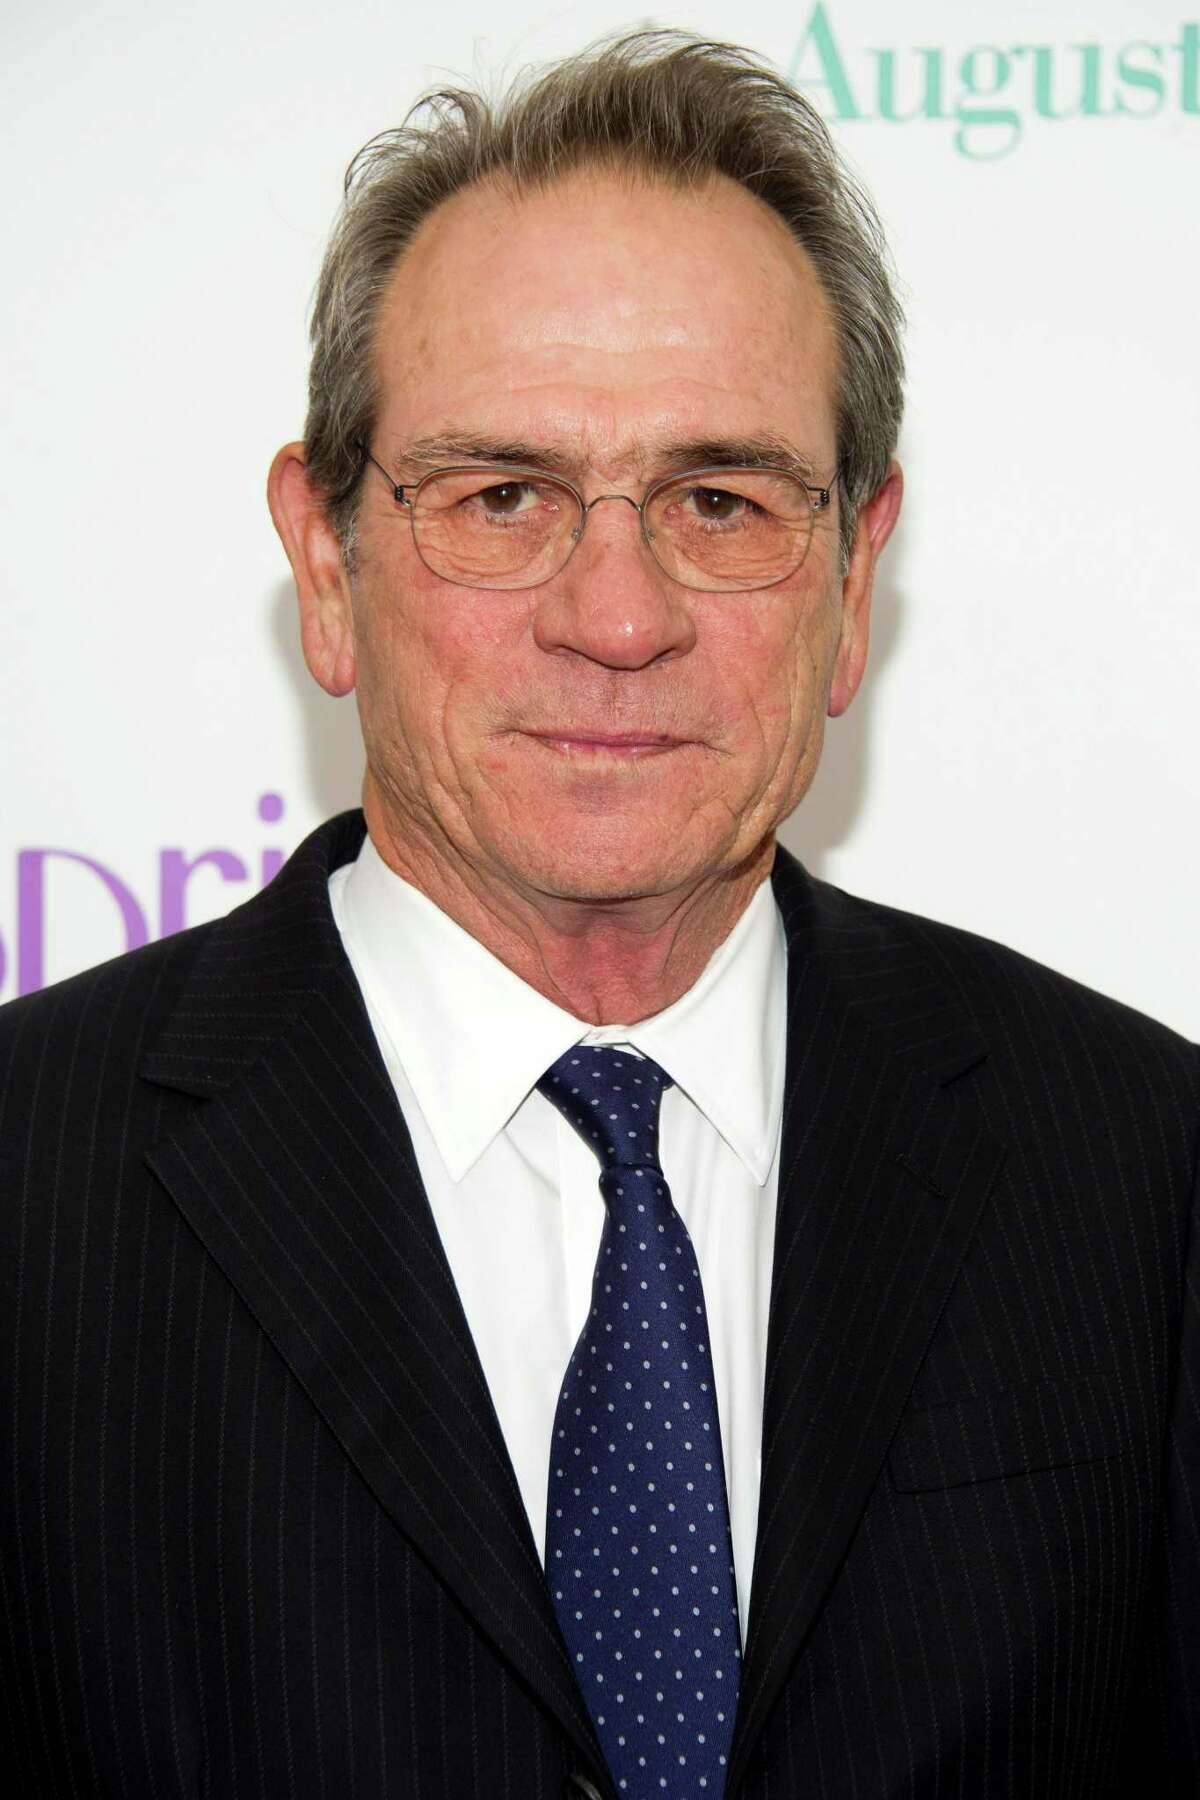 """FILE - This Aug. 6, 2012 file photo shows actor Tommy Lee Jones at the """"Hope Springs"""" premiere in New York. Jones was nominated for an Academy Award for best actor on Thursday, Jan. 10, 2013, for his role in A'A?""""Lincoln.A'A?"""" The 85th Academy Awards will air live on Sunday, Feb. 24, 2013 on ABC. (Photo by Charles Sykes/Invision/AP, file)"""